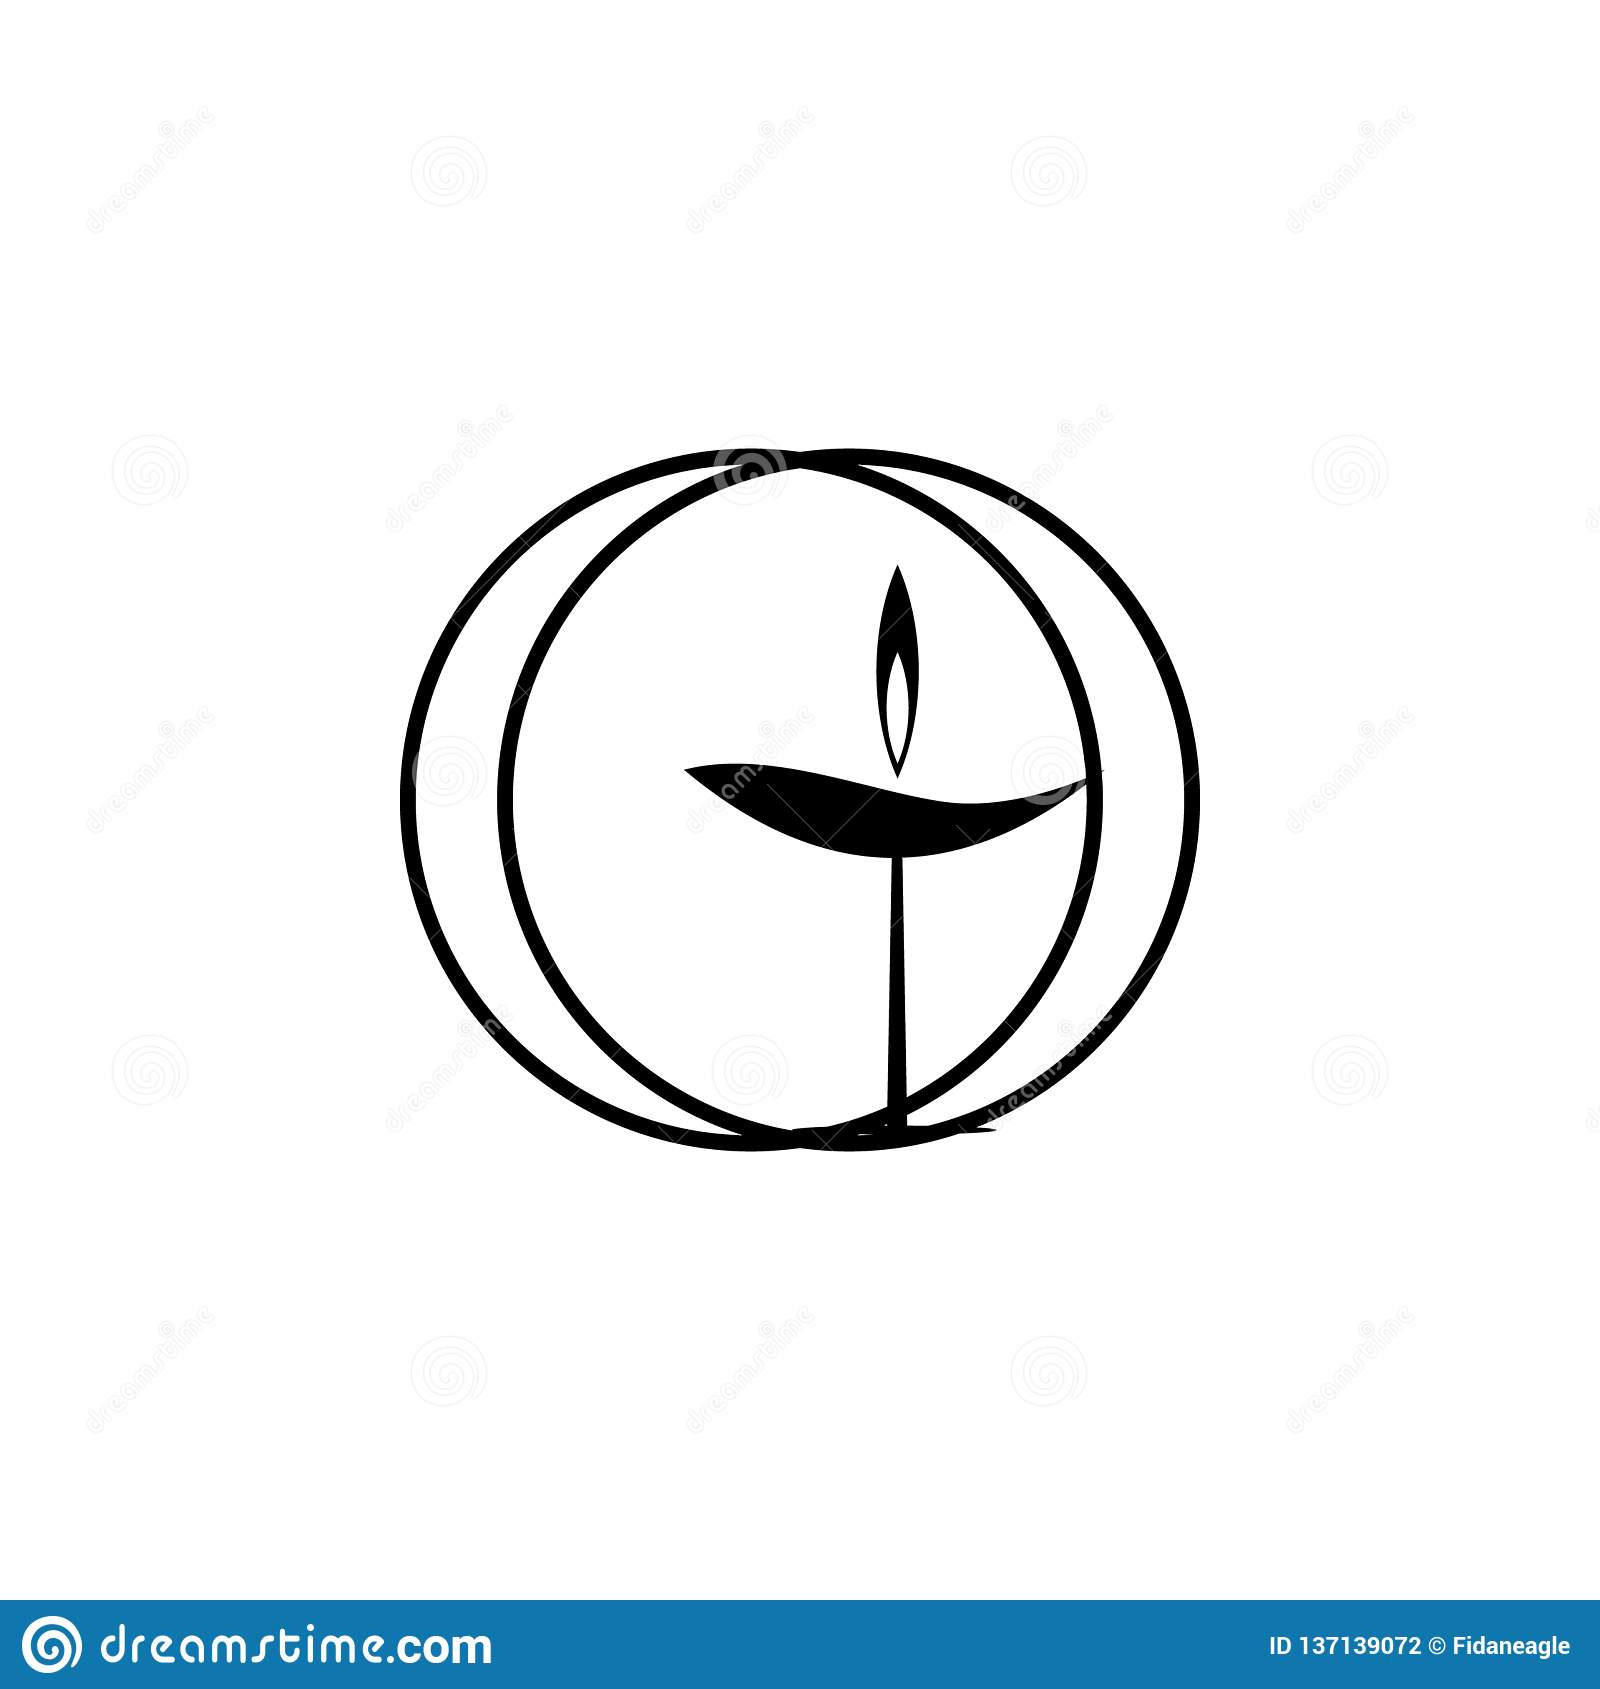 Religion symbol, Unitarian, universalism icon. Element of religion symbol illustration. Signs and symbols icon can be used for web